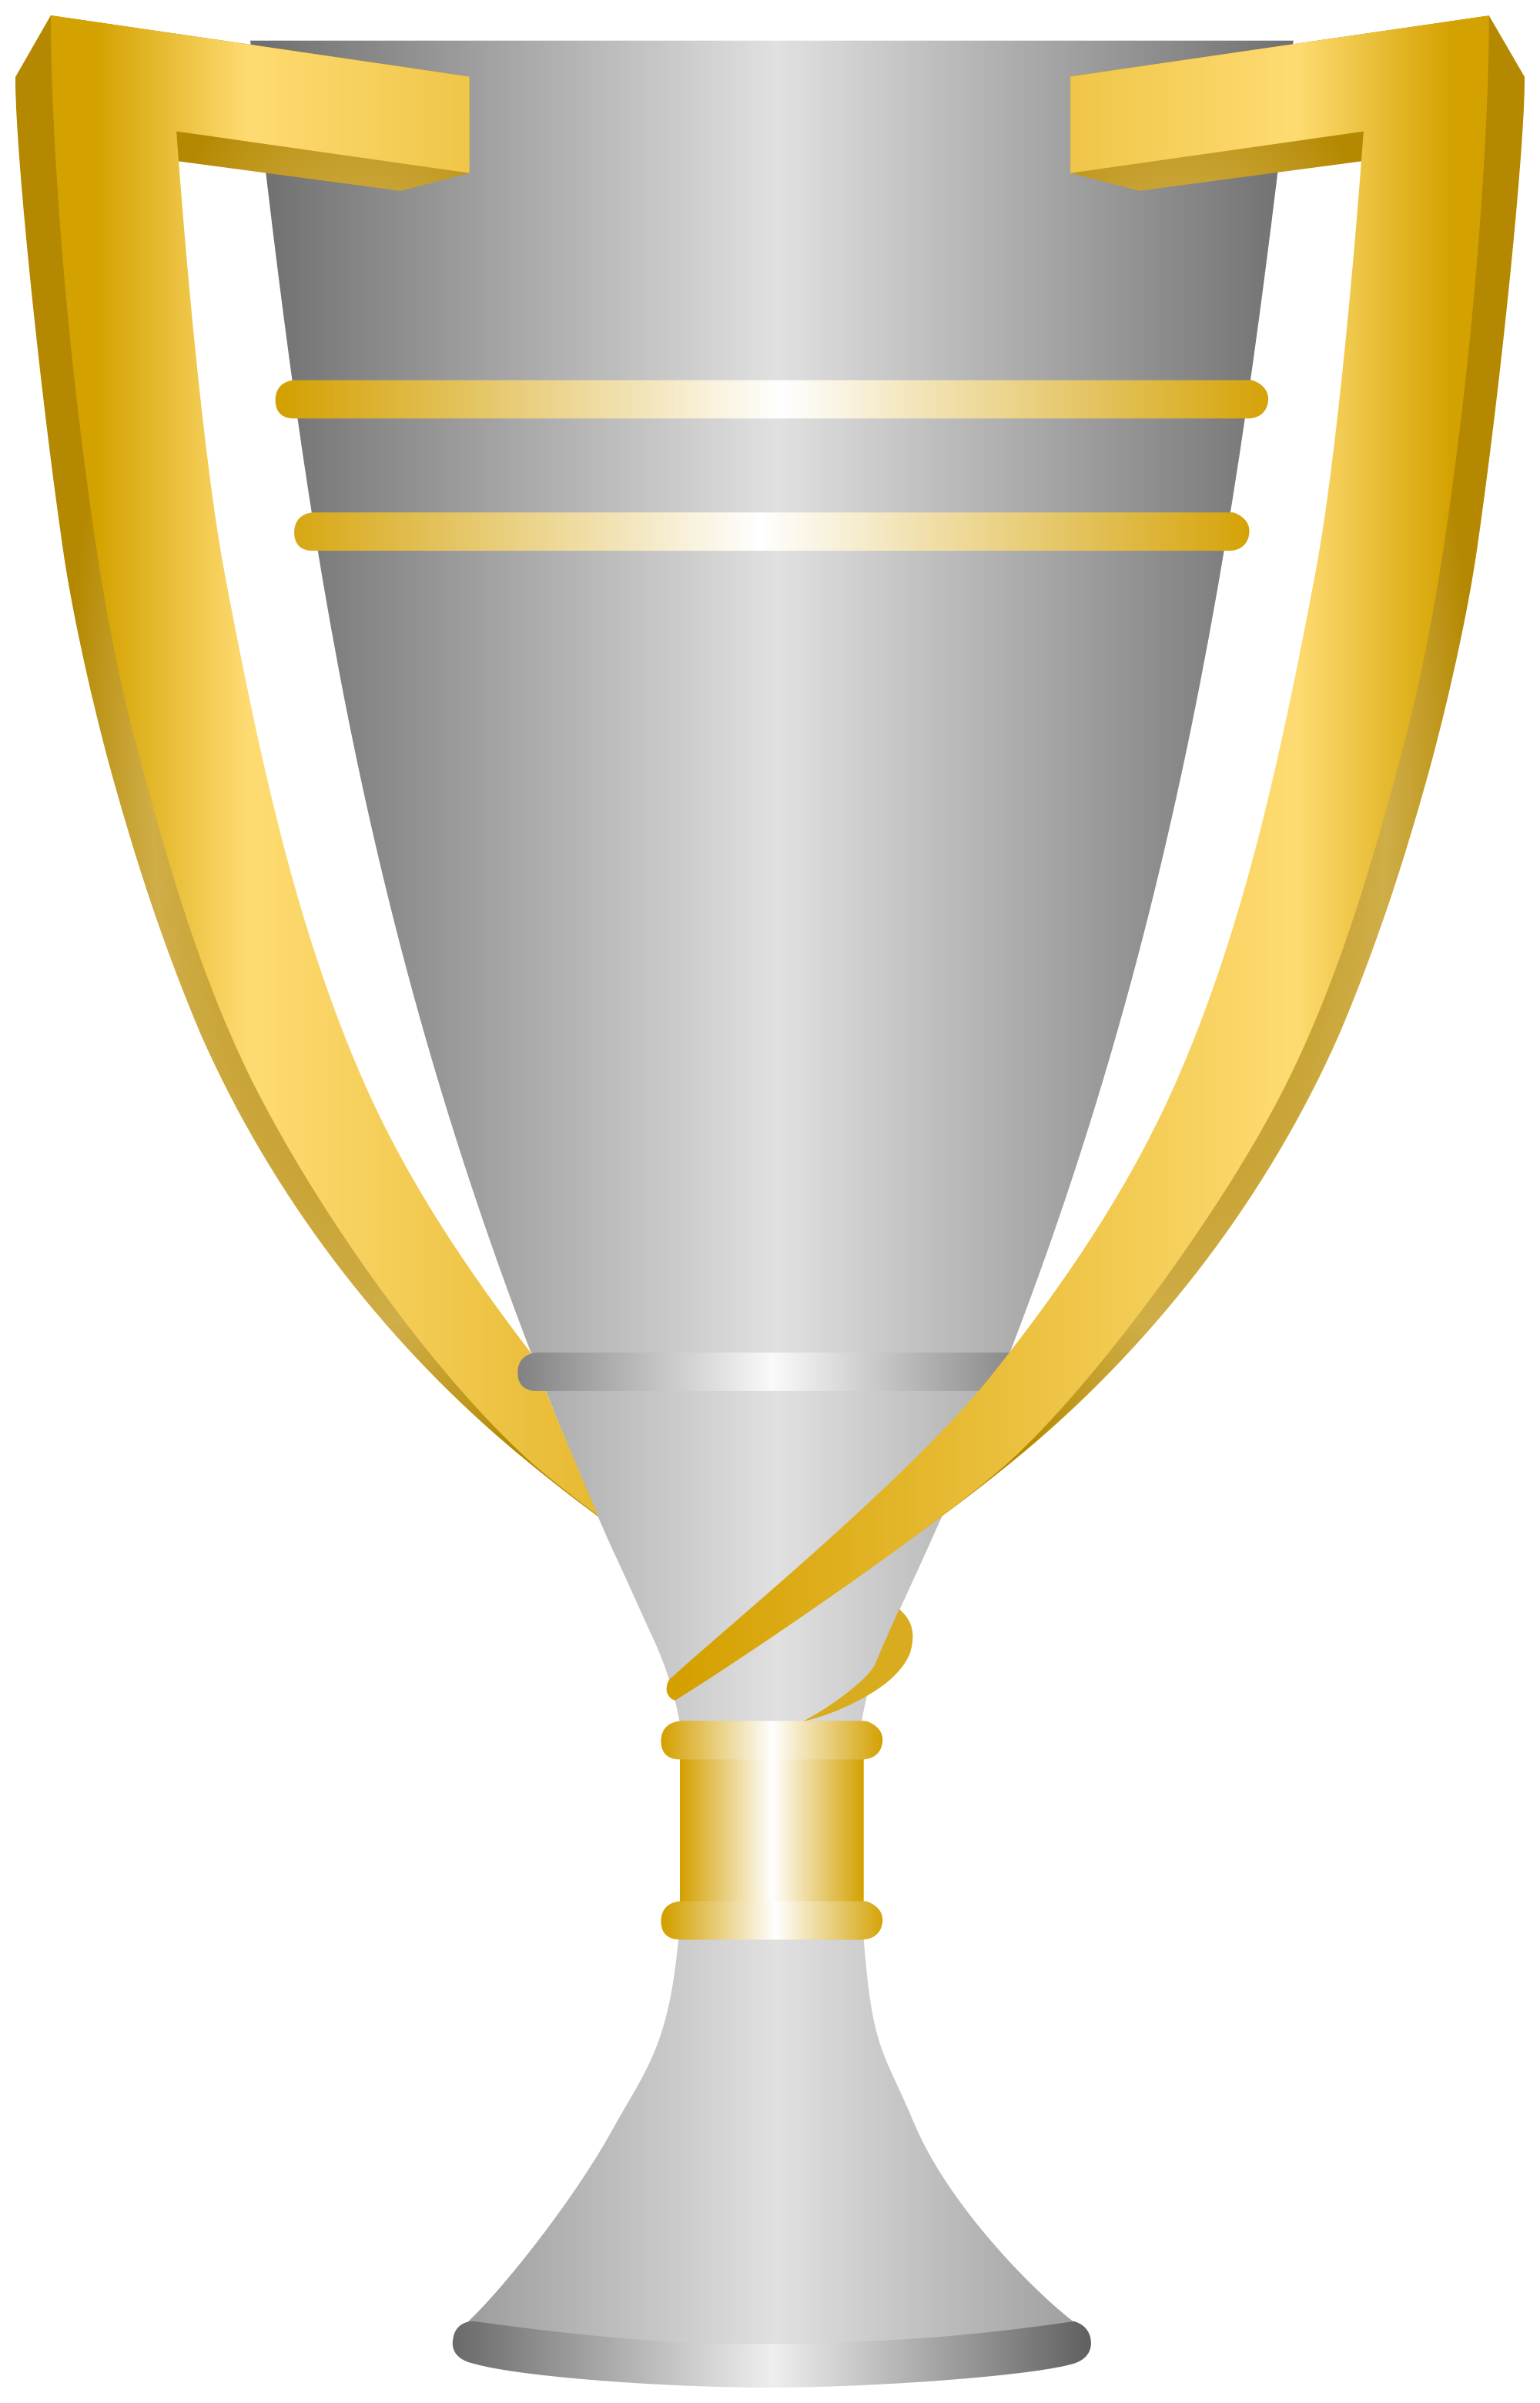 Football trophies clipart banner File:Football League 2 Trophy.svg - Wikimedia Commons banner